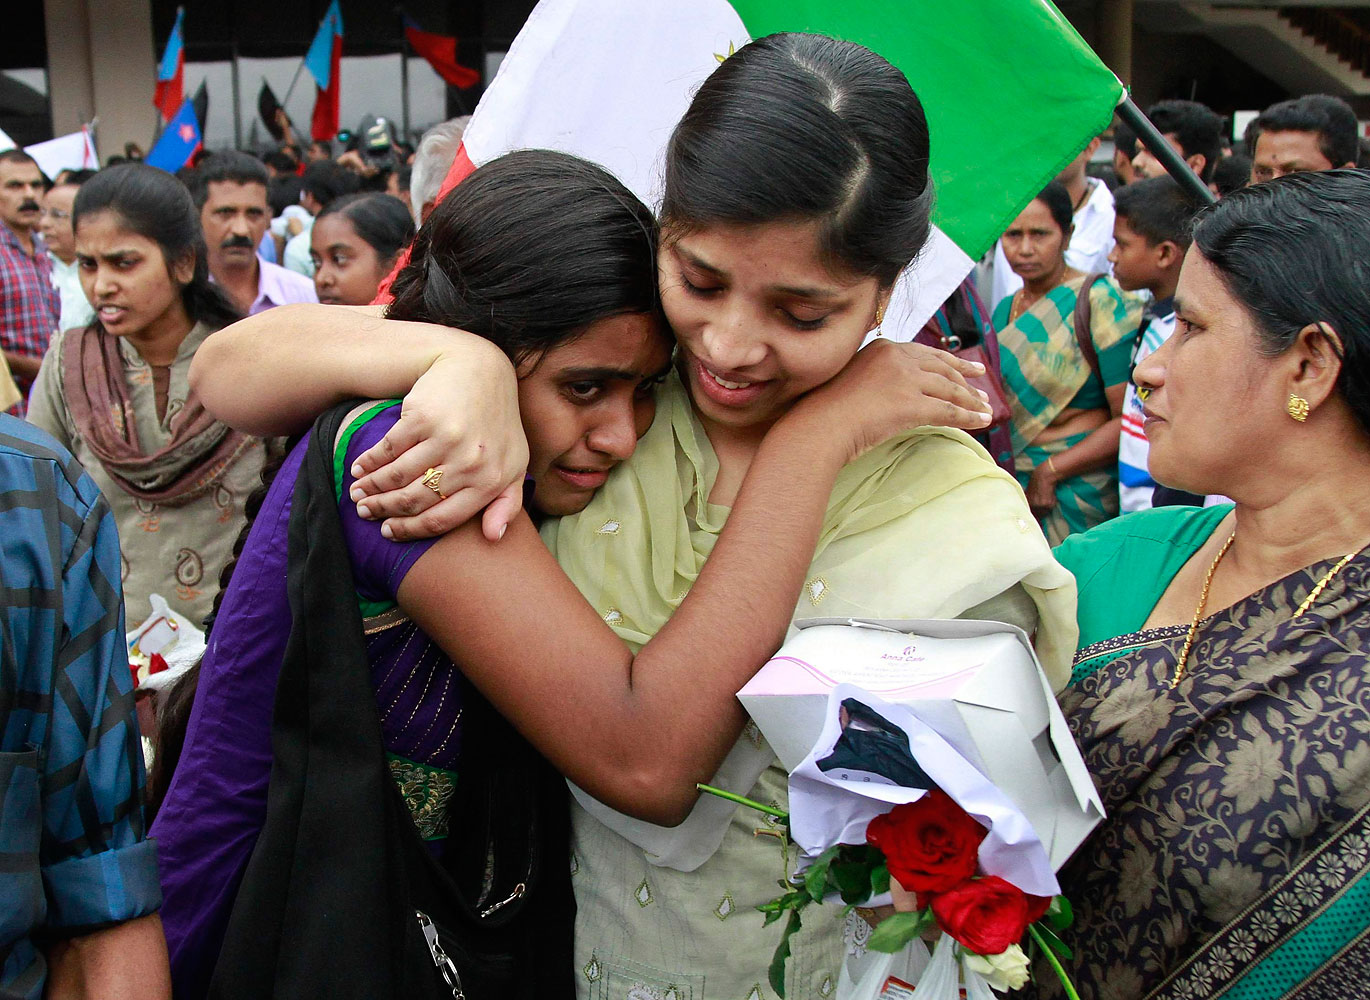 Sherin, center, an Indian nurse caught up in fighting in Iraq, hugs her sister after arriving at the airport in the southern Indian city of Kochi, July 5, 2014.